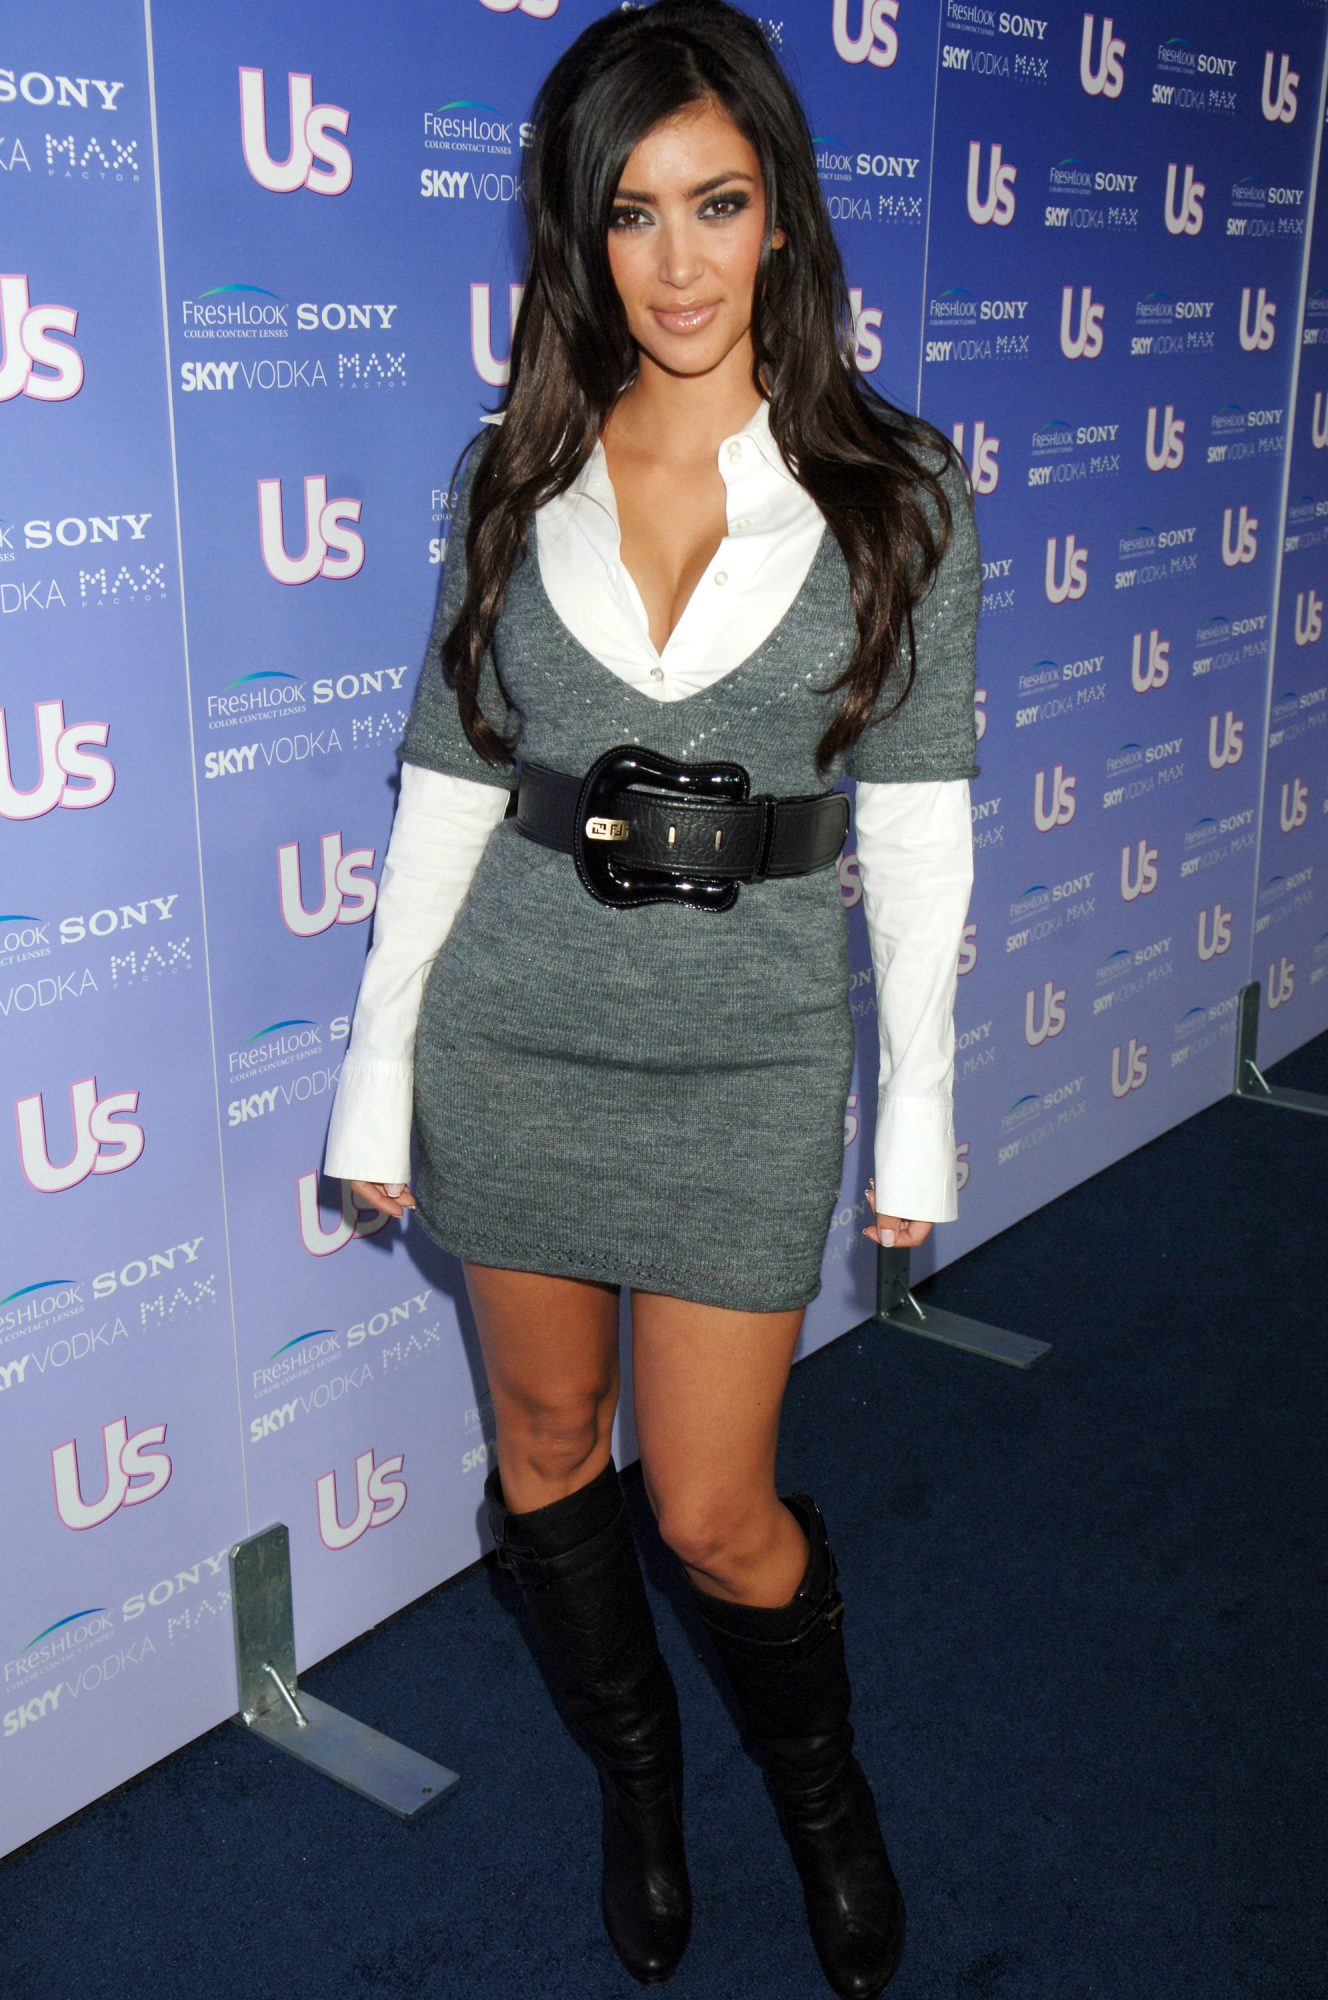 <p>Kim Kardashian (Pre West) at <em>US Weekly</em>'s Hot Hollywood Event in 2006</p>